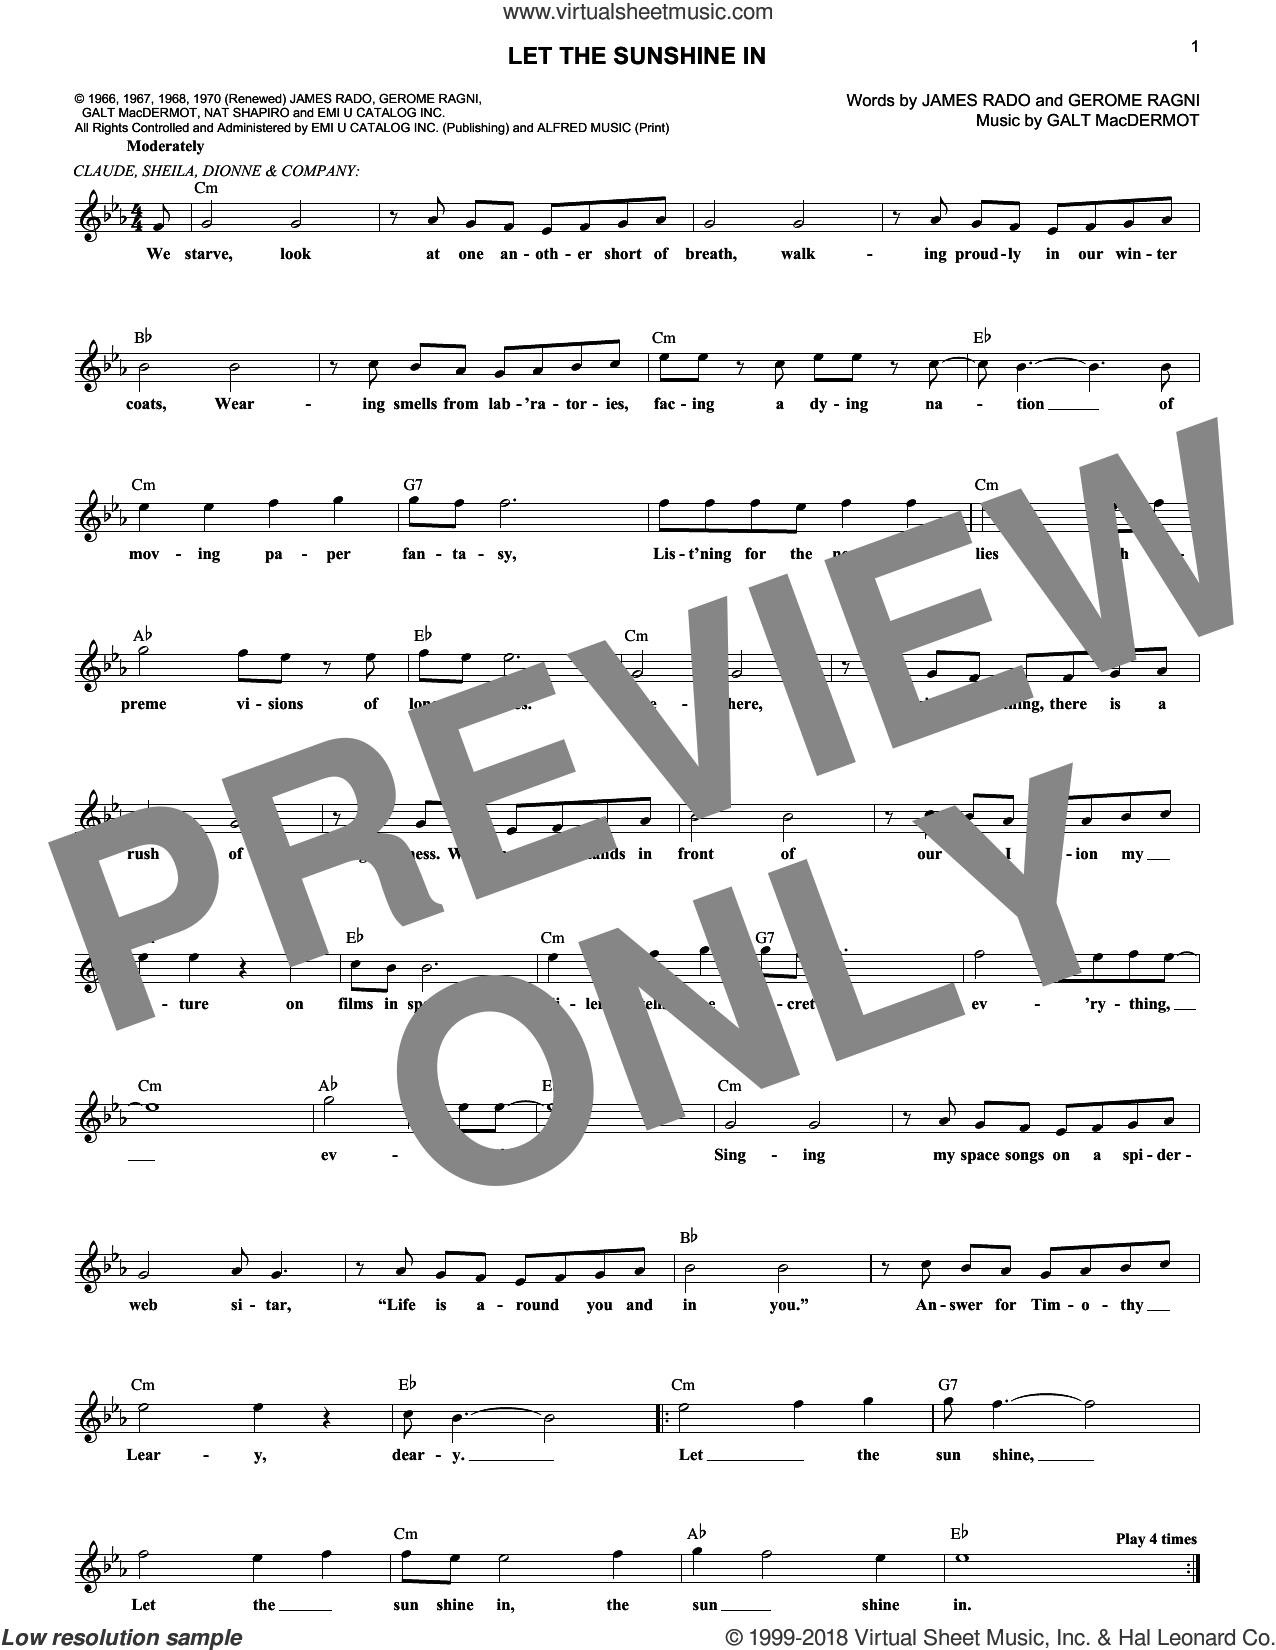 Let The Sunshine In sheet music for voice and other instruments (fake book) by The Fifth Dimension, Galt MacDermot, Gerome Ragni and James Rado, intermediate skill level